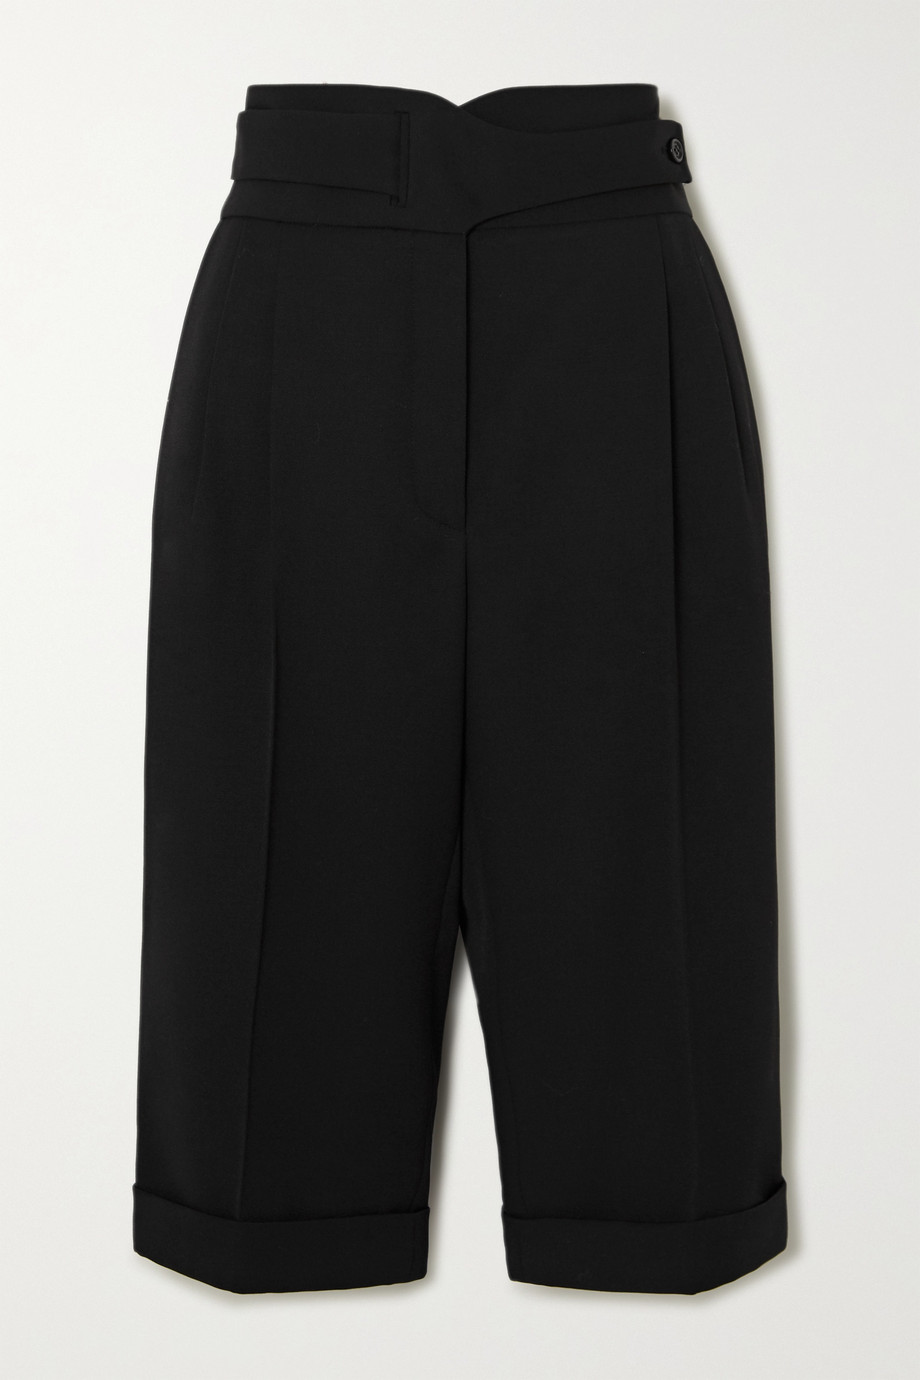 SAINT LAURENT Pleated wool-twill shorts